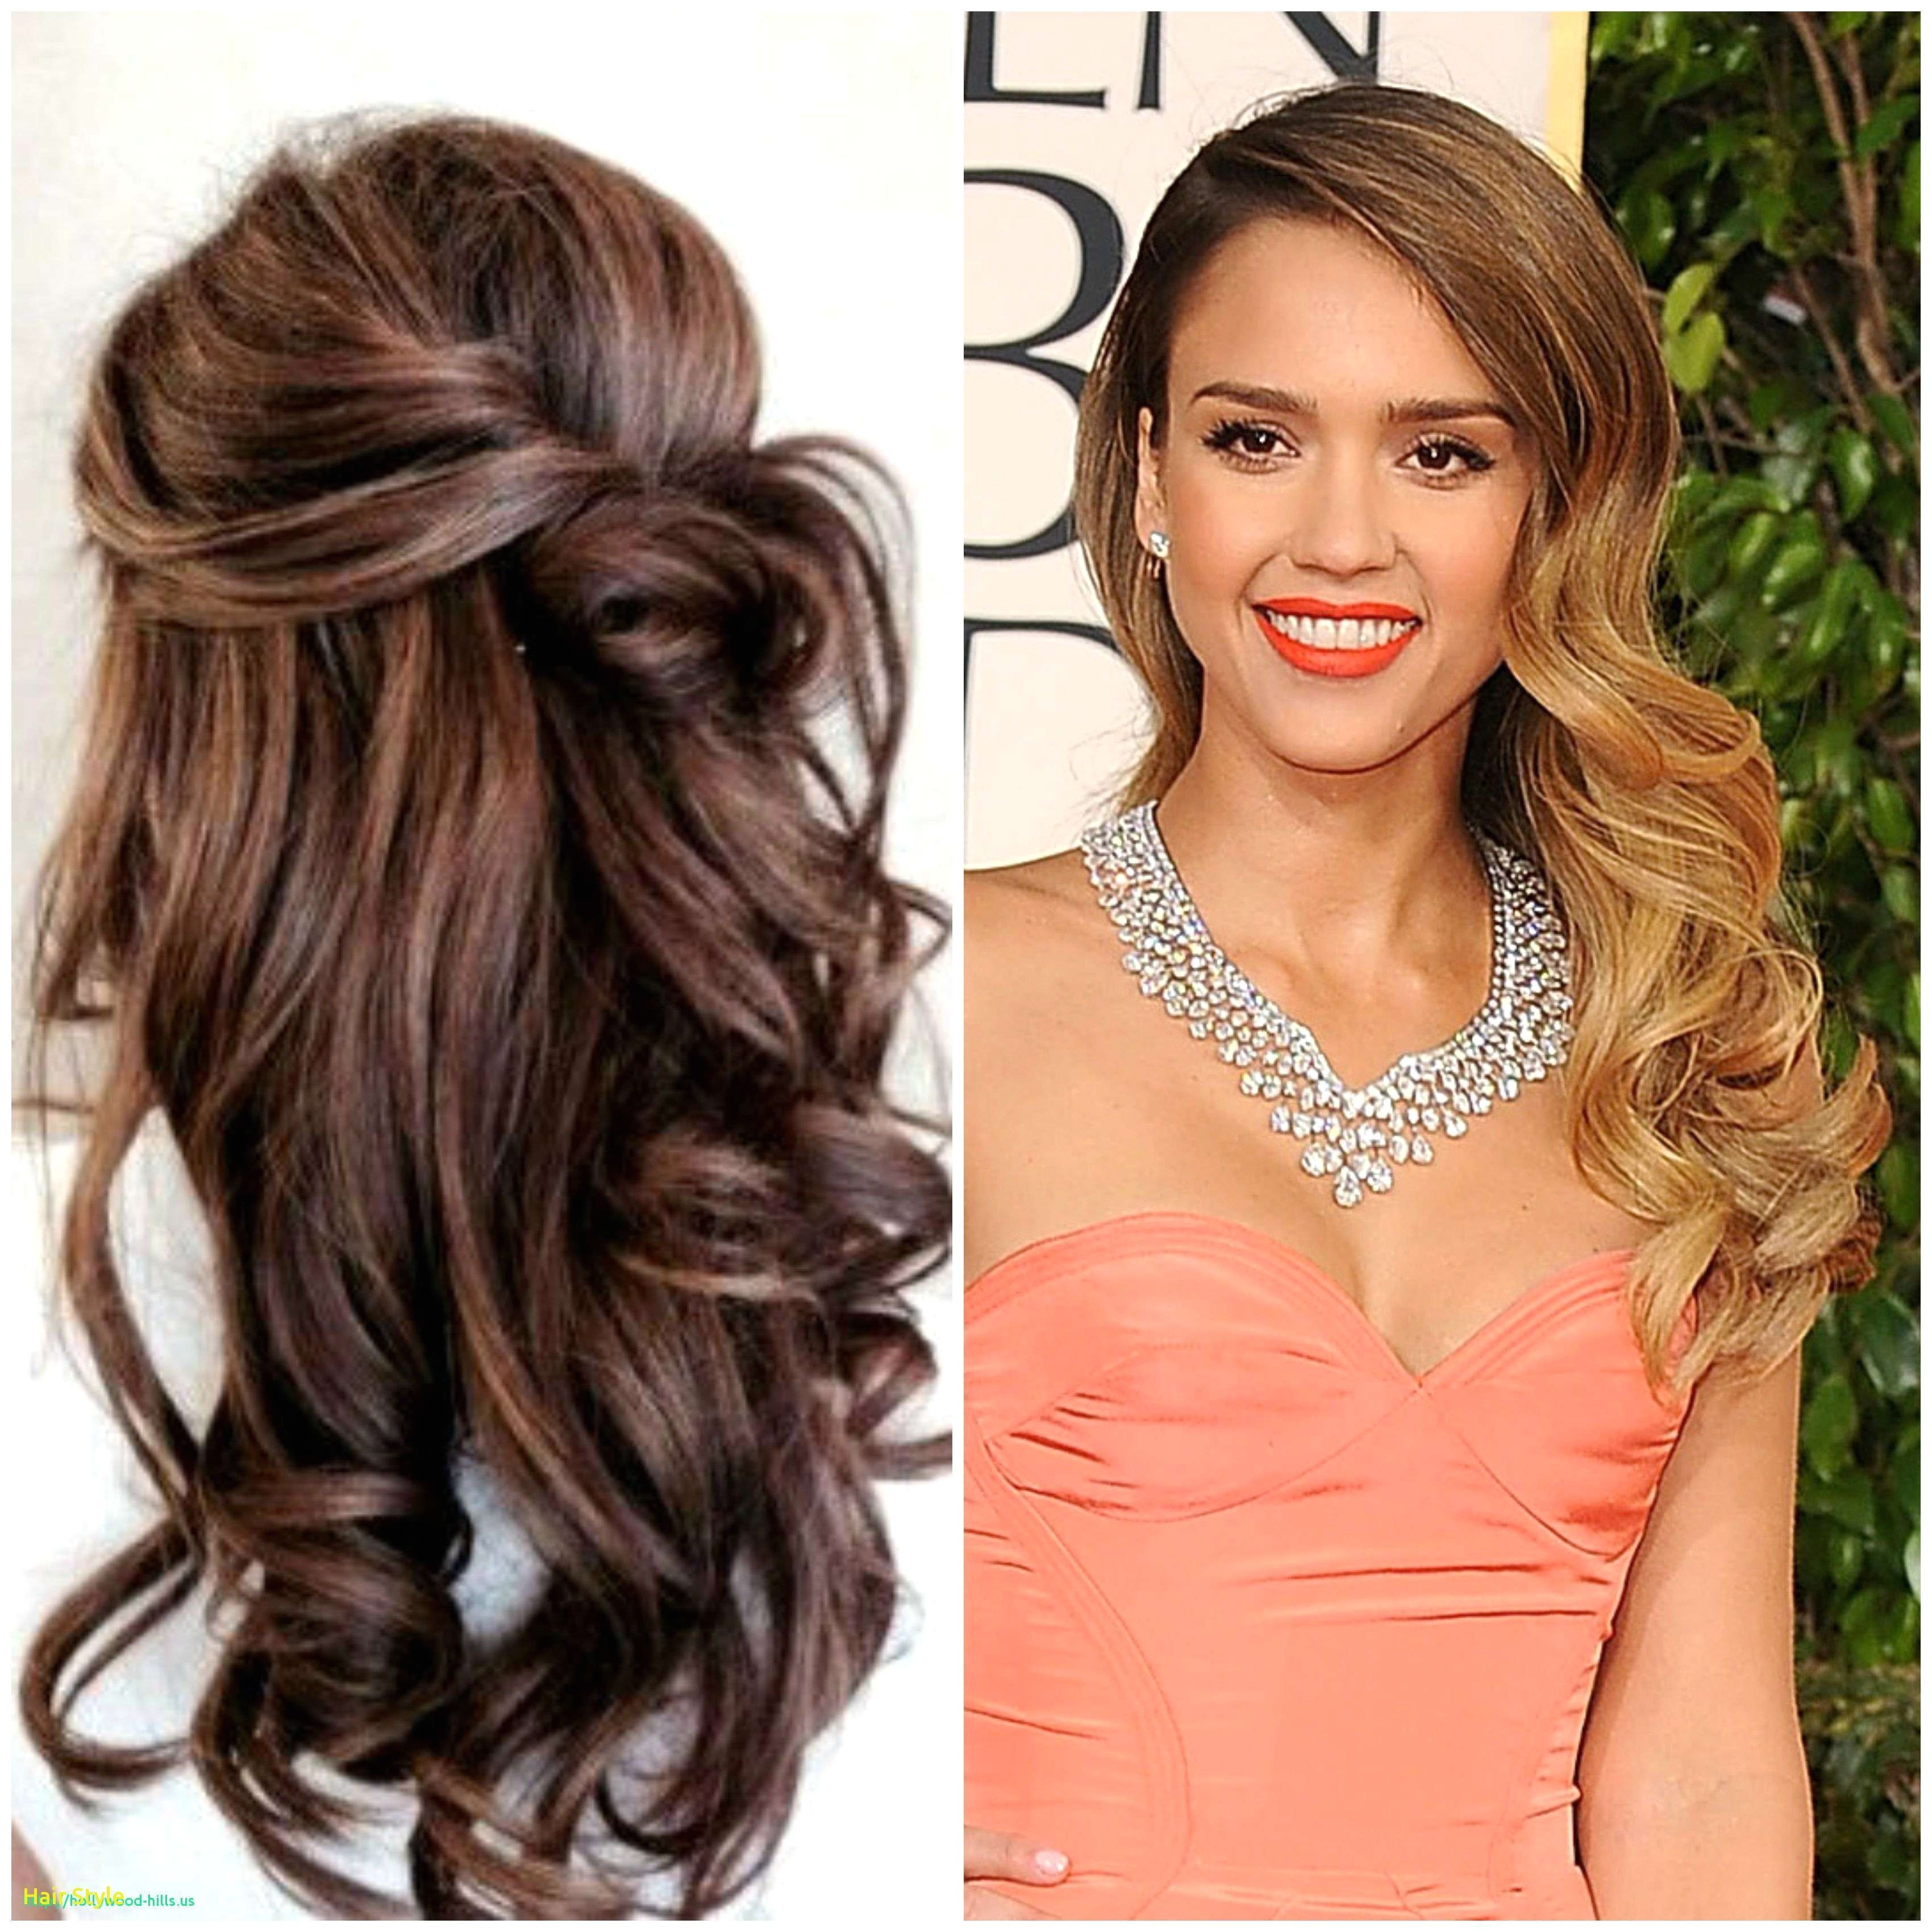 Hairstyle for Oval Face Girl Best New Best Hairstyles for Oval Faces 2015 – Adriculous